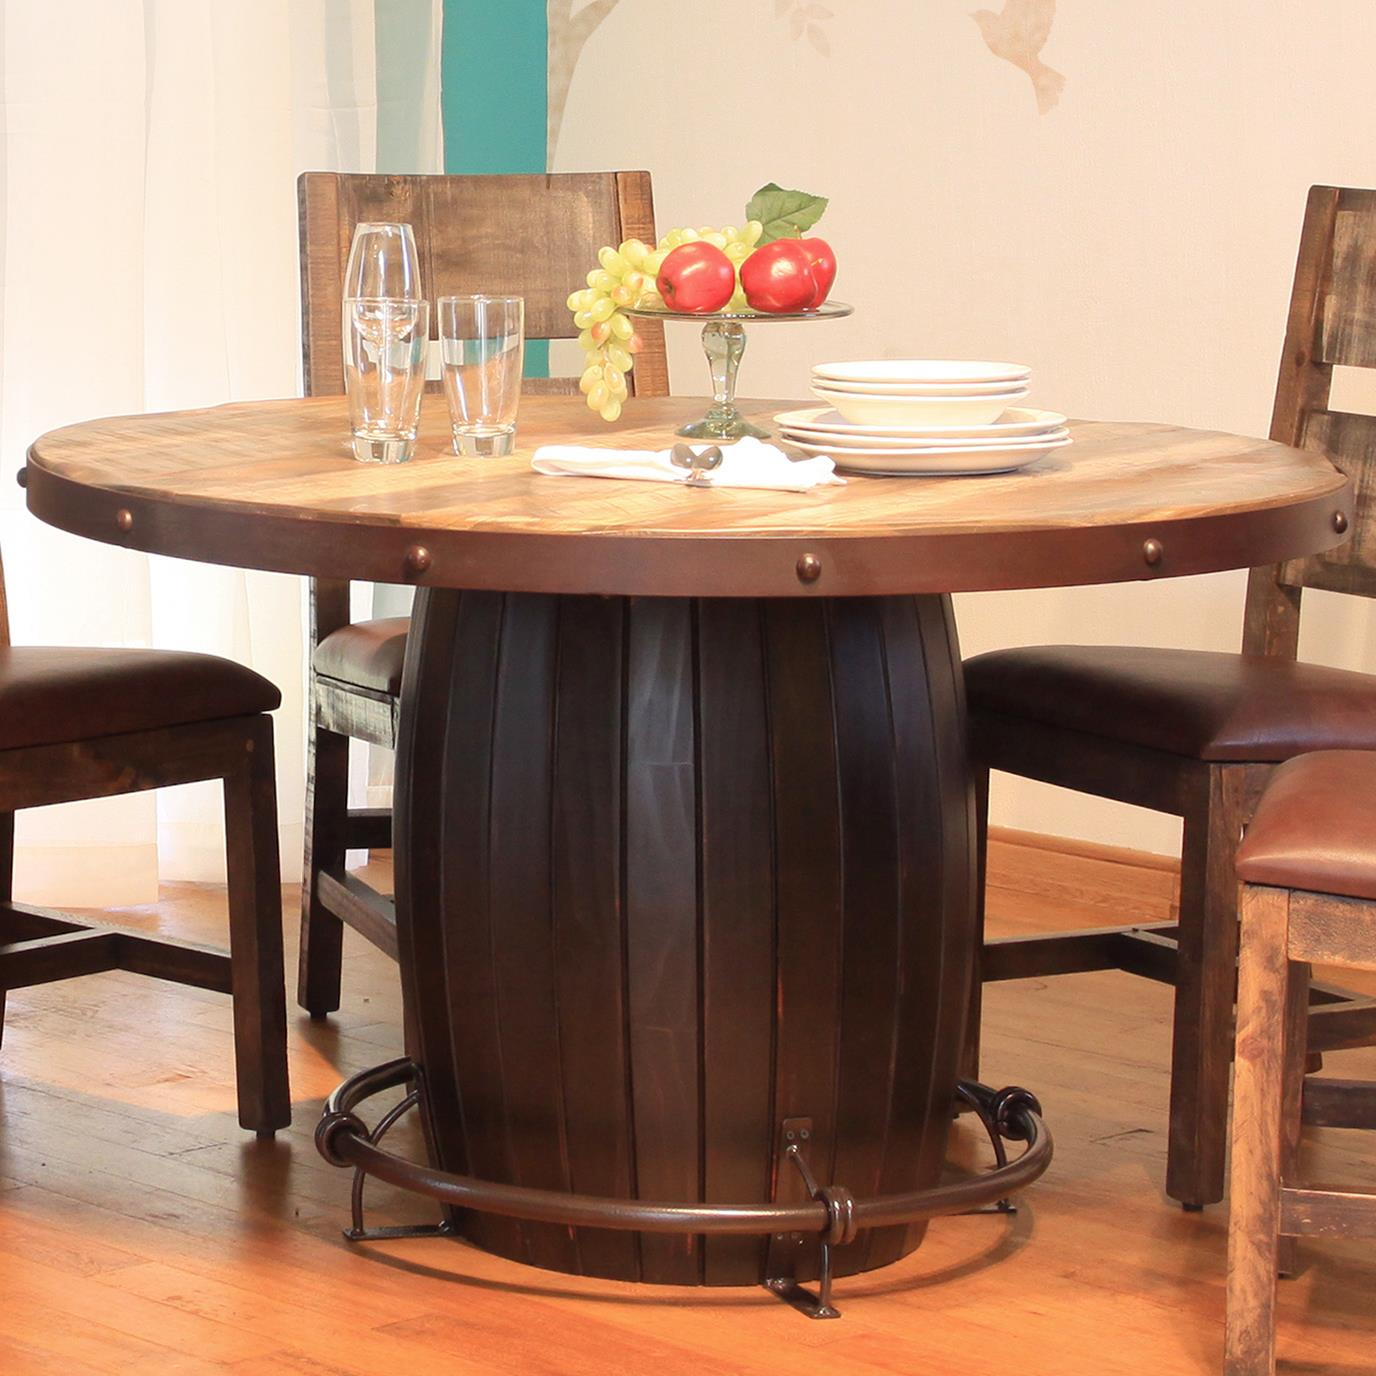 Round Dining Table with Barrell Base